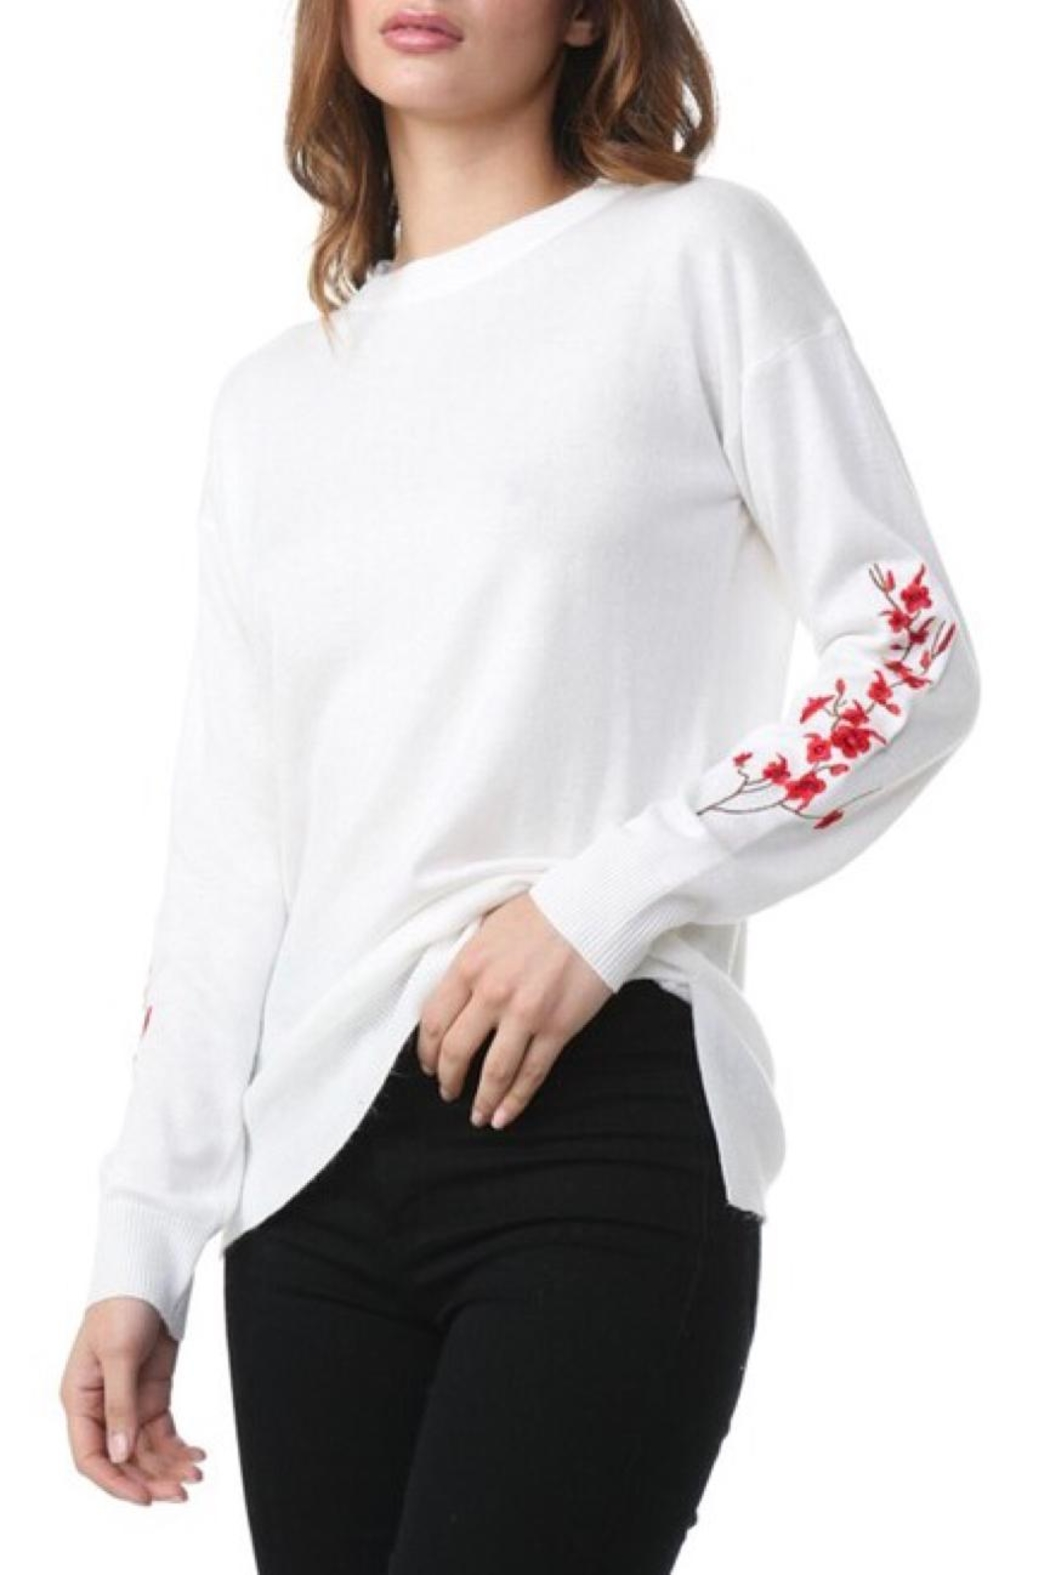 COVERSTITCHED Embroidered Sleeve Sweater - Main Image